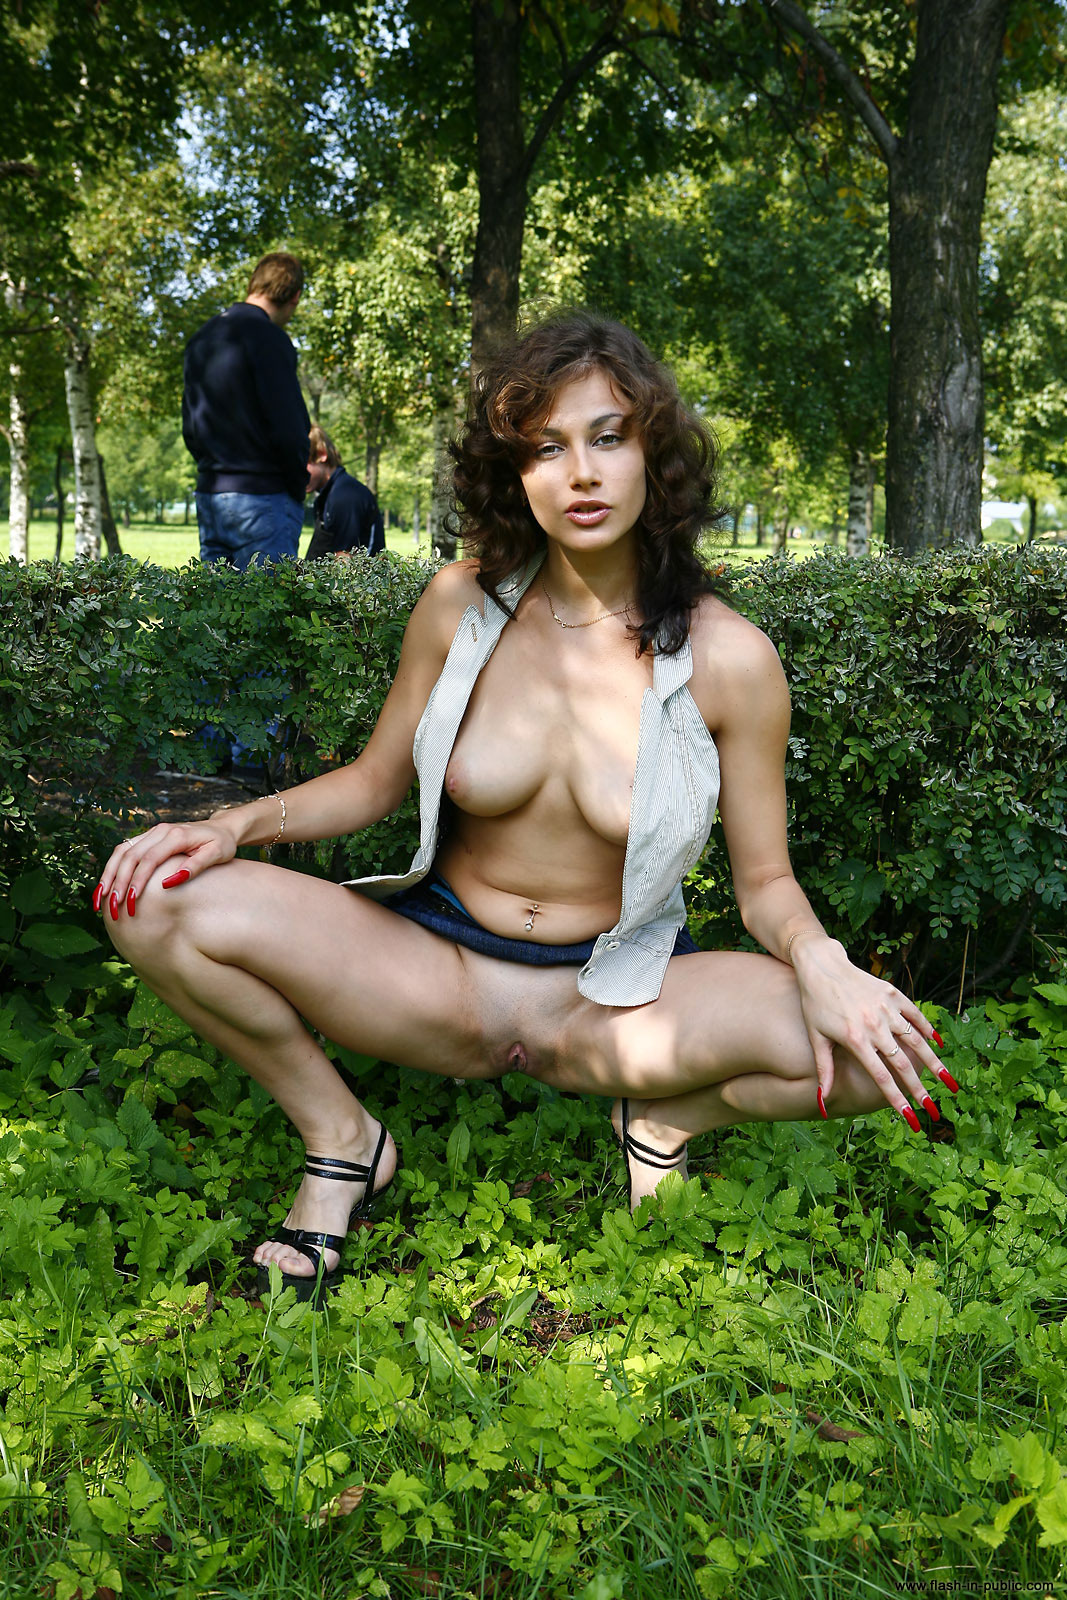 marianna-h-nude-park-flash-in-public-09